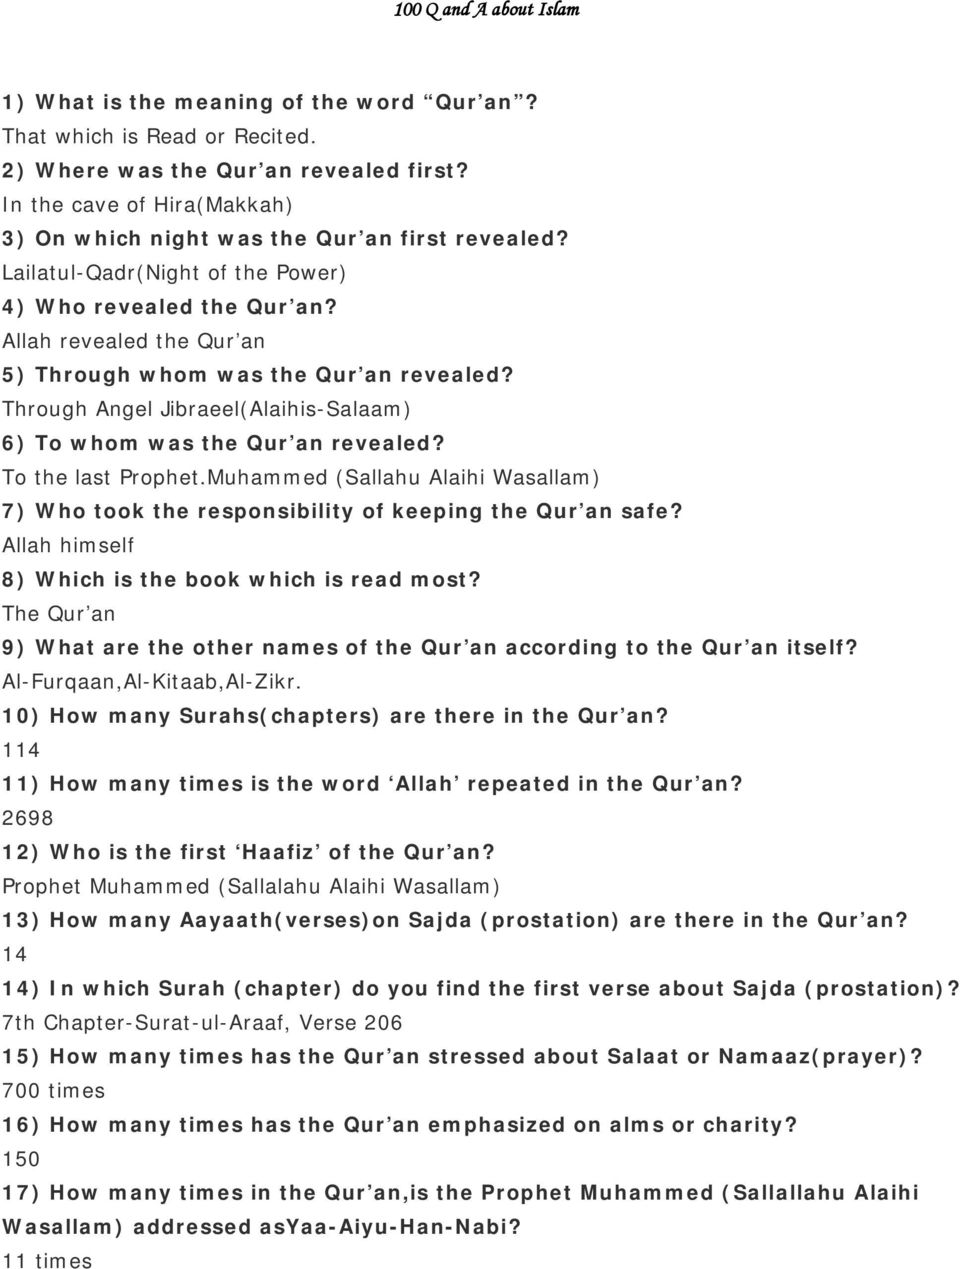 100 Q and A about Islam - PDF